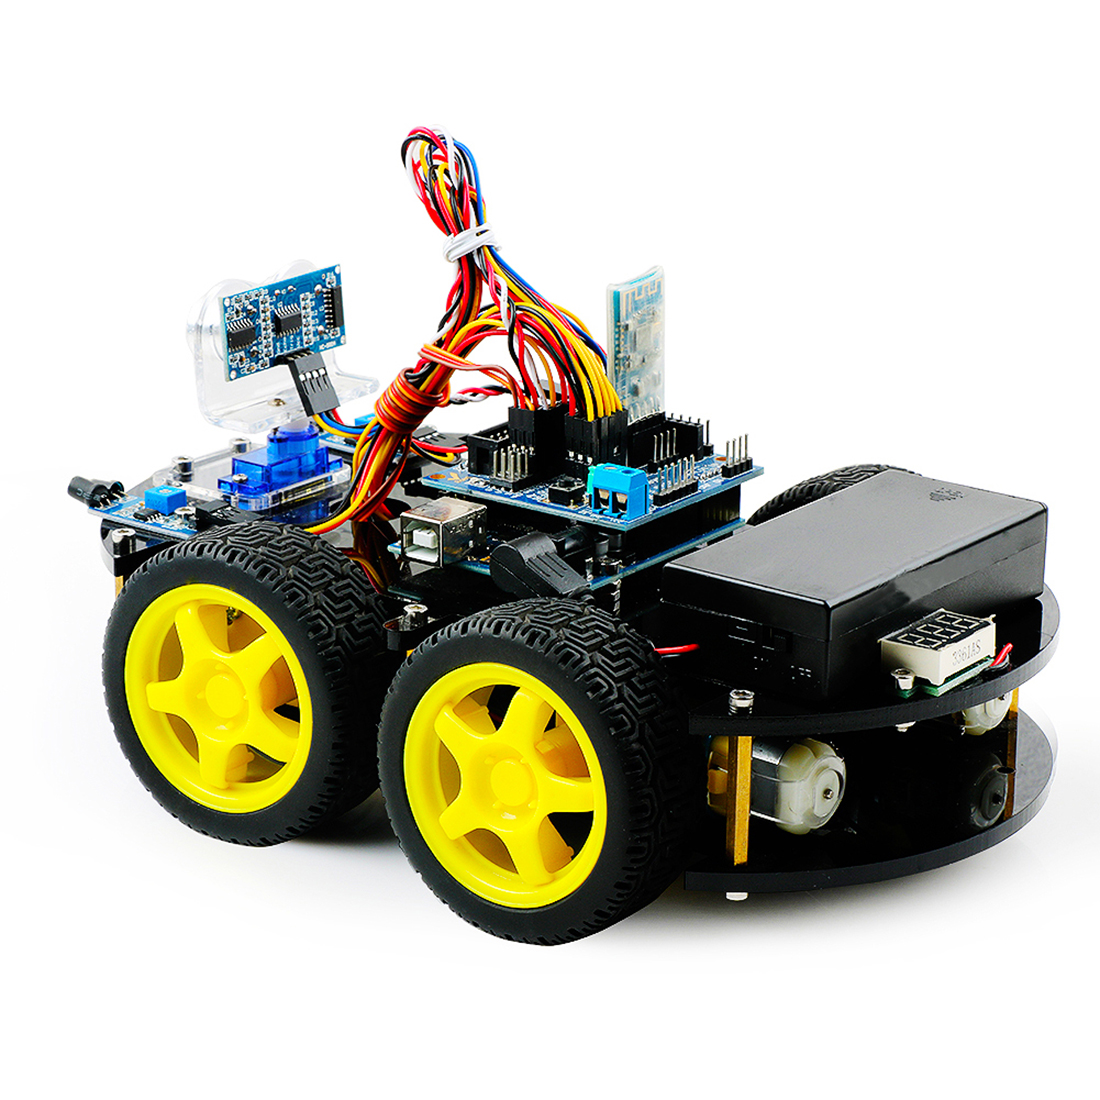 DIY Obstacle Avoidance Smart Programmable Robot Car Educational Learning Kit For BLE UNO Interactive Game Educational Toys Gifts